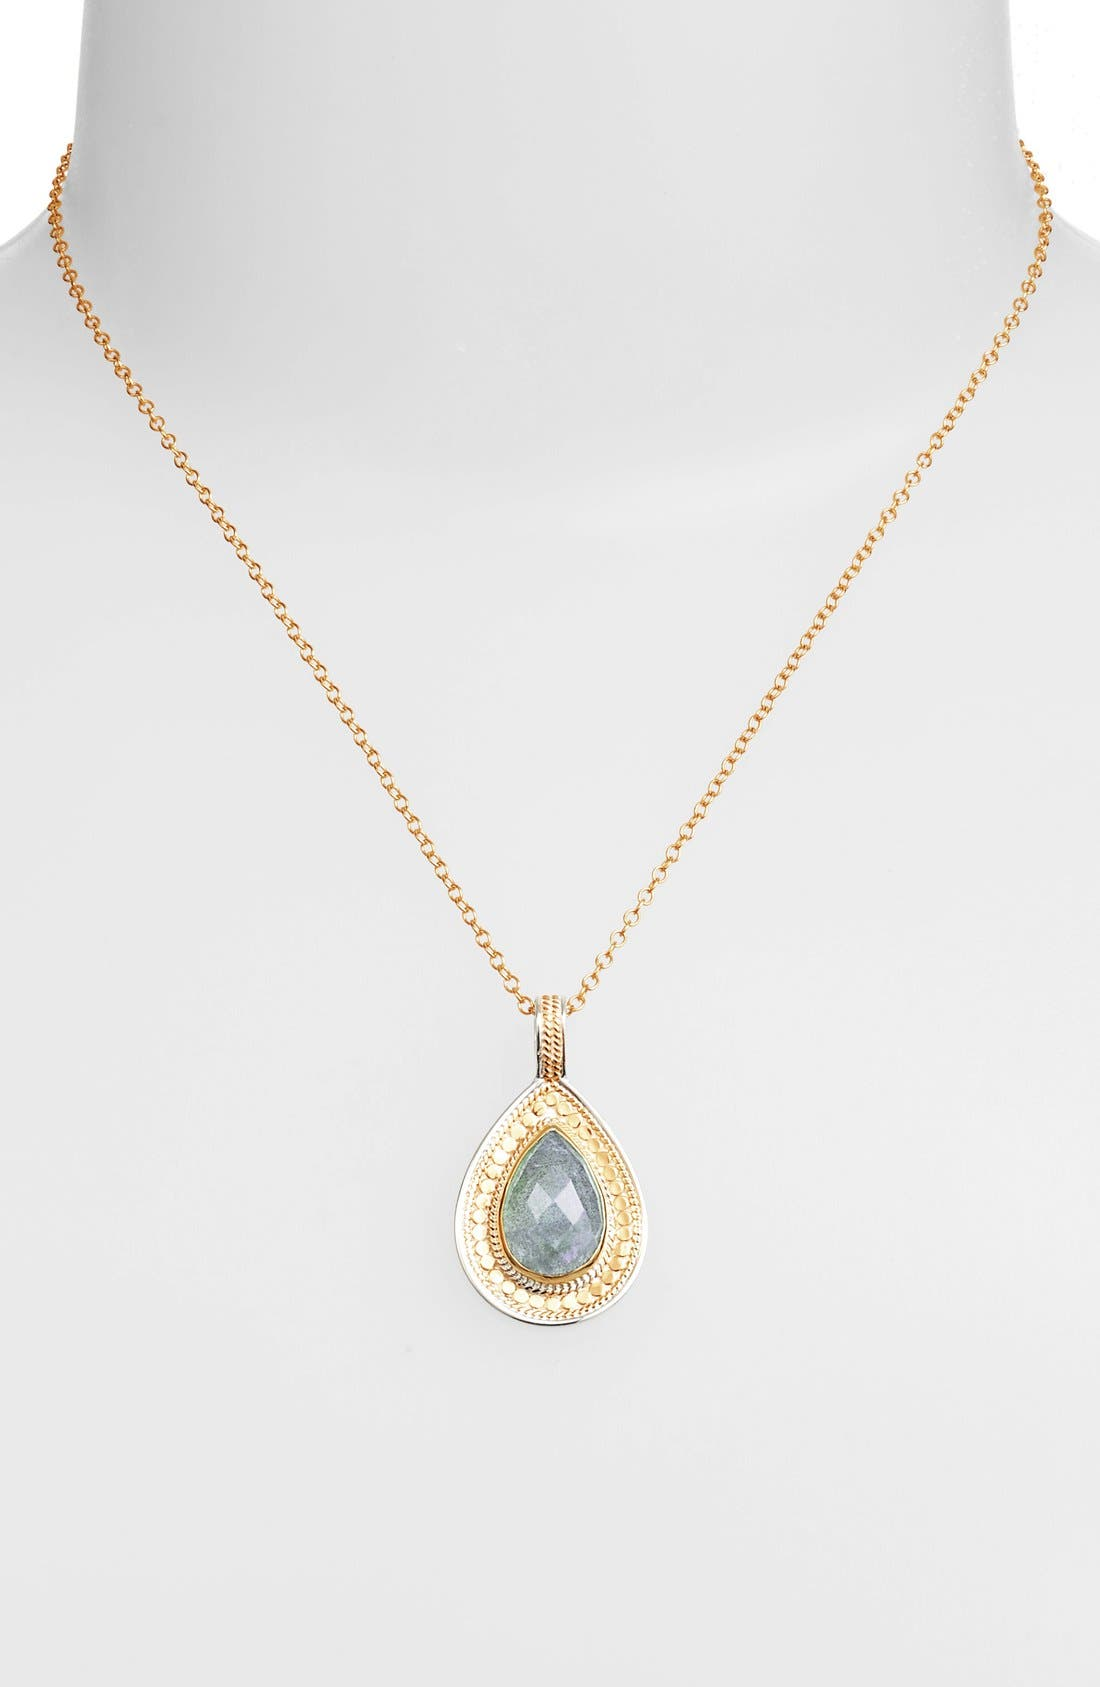 Main Image - Anna Beck 'Gili' Teardrop Pendant Necklace (Online Only)